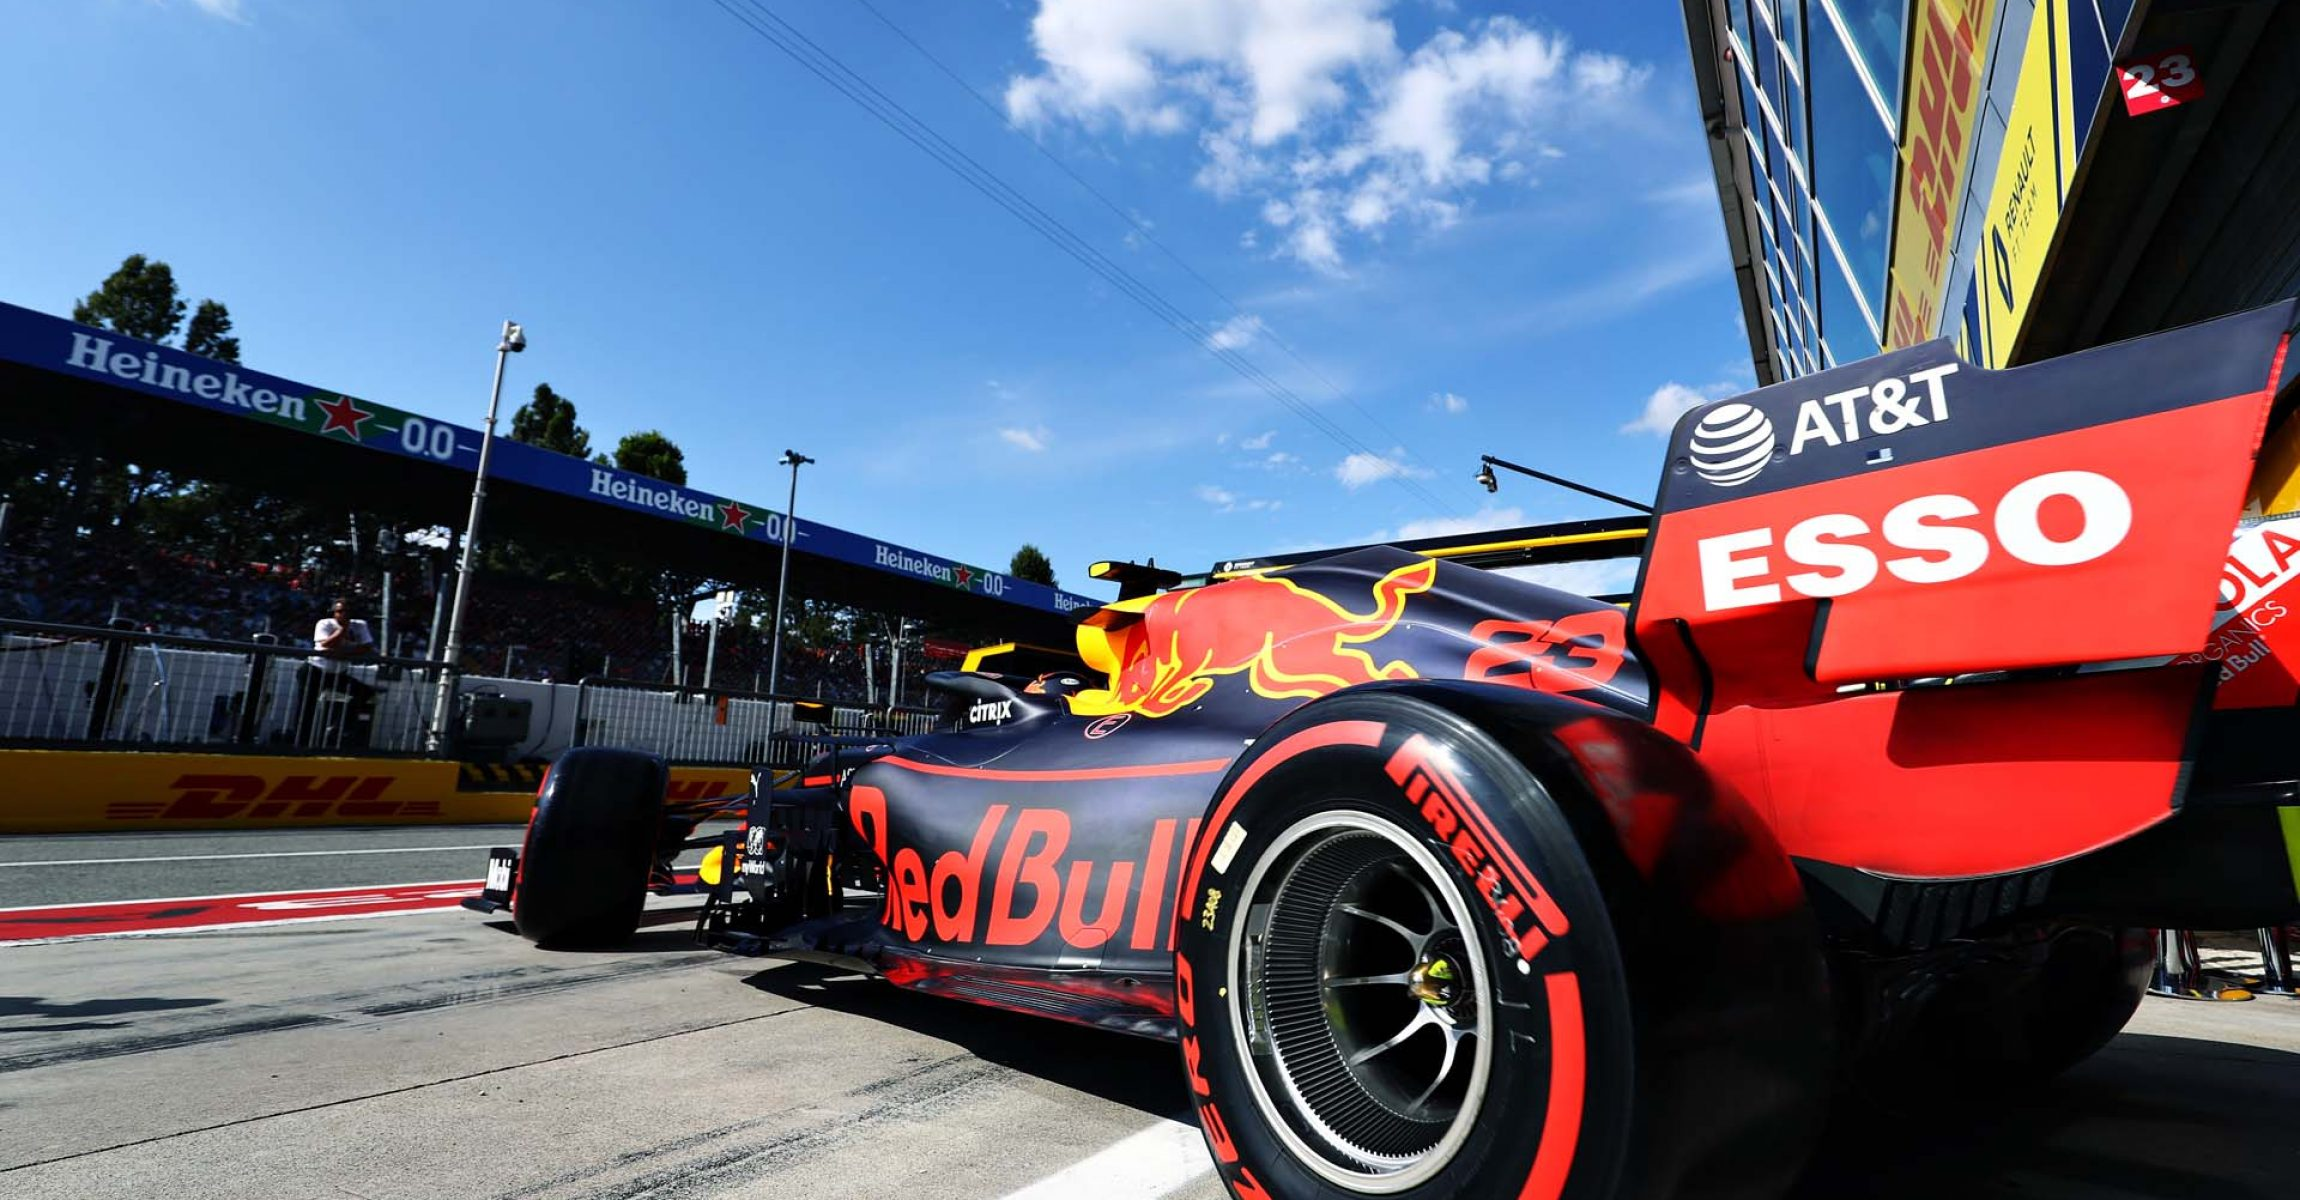 MONZA, ITALY - SEPTEMBER 07: Alexander Albon of Thailand driving the (23) Aston Martin Red Bull Racing RB15 leaves the garage during qualifying for the F1 Grand Prix of Italy at Autodromo di Monza on September 07, 2019 in Monza, Italy. (Photo by Mark Thompson/Getty Images) // Getty Images / Red Bull Content Pool  // AP-21GH3YADH2111 // Usage for editorial use only //